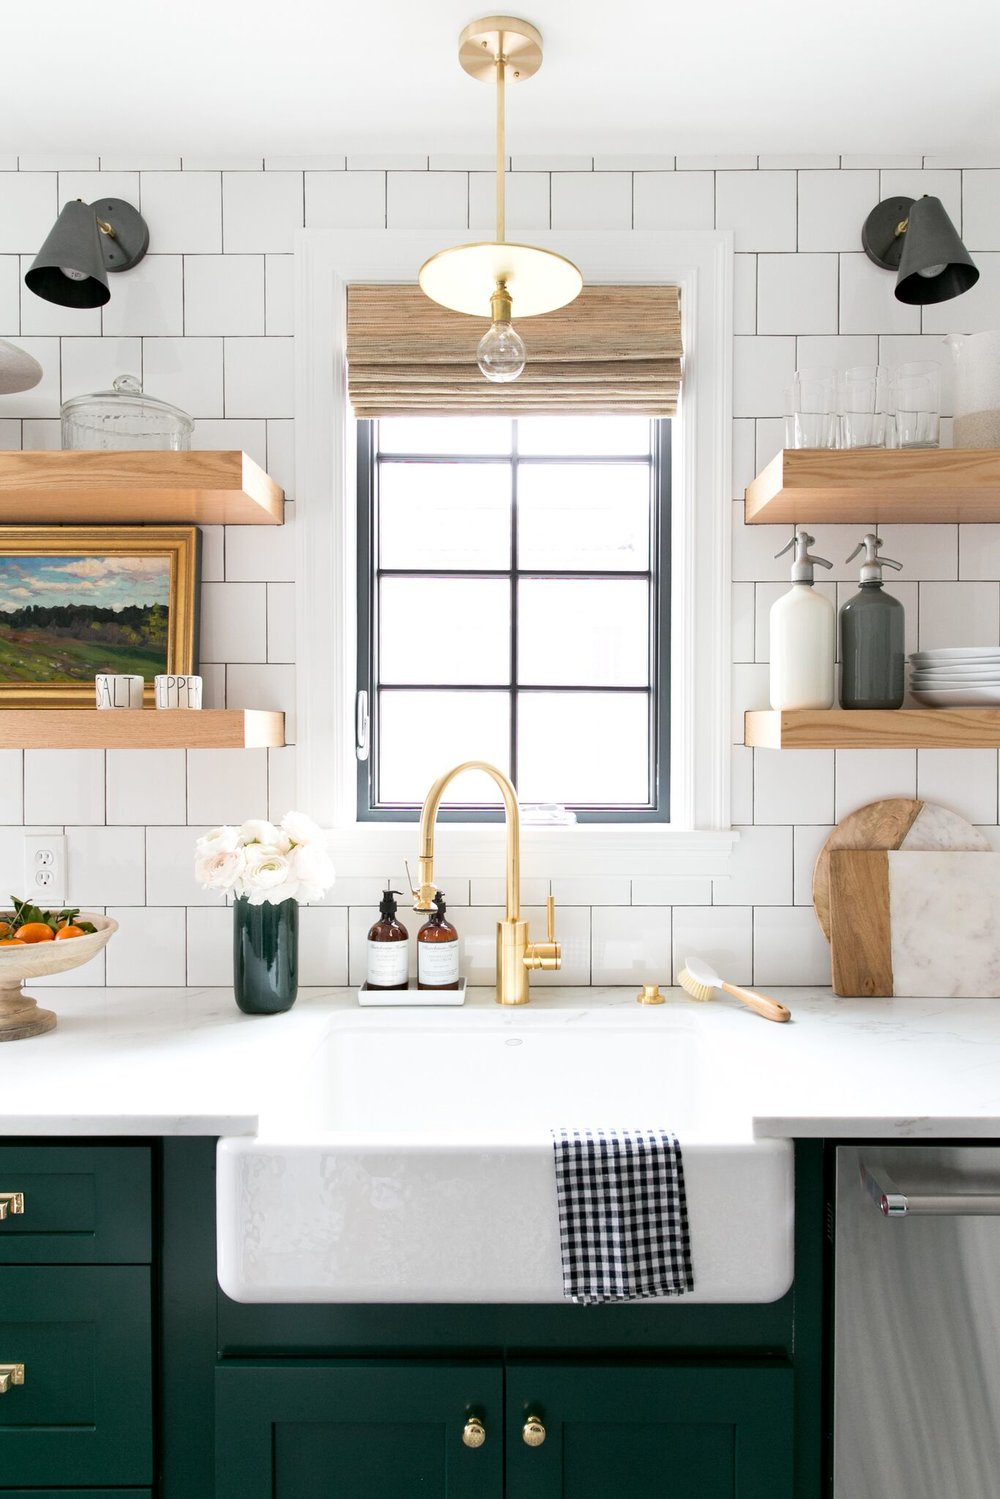 Good Square Subway Tile